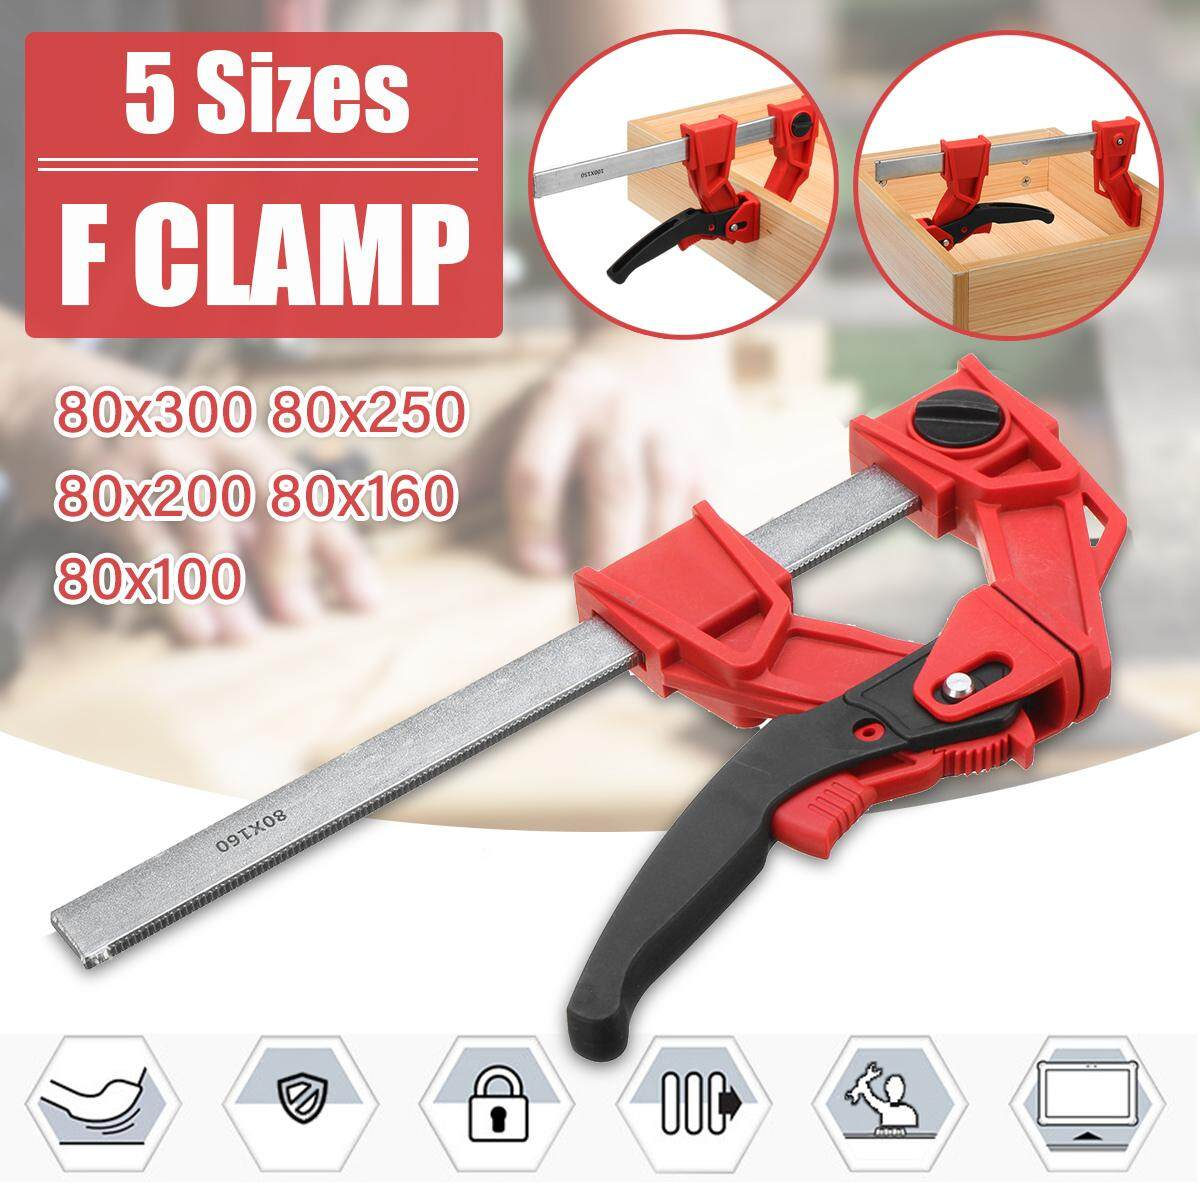 Woodworking Clamp Quick Release Wood Working Bar F Clamp Grip Ratchet Squeeze DIY Hand Carpentry Gadgets 【80-250mm Parallel F Clamp】